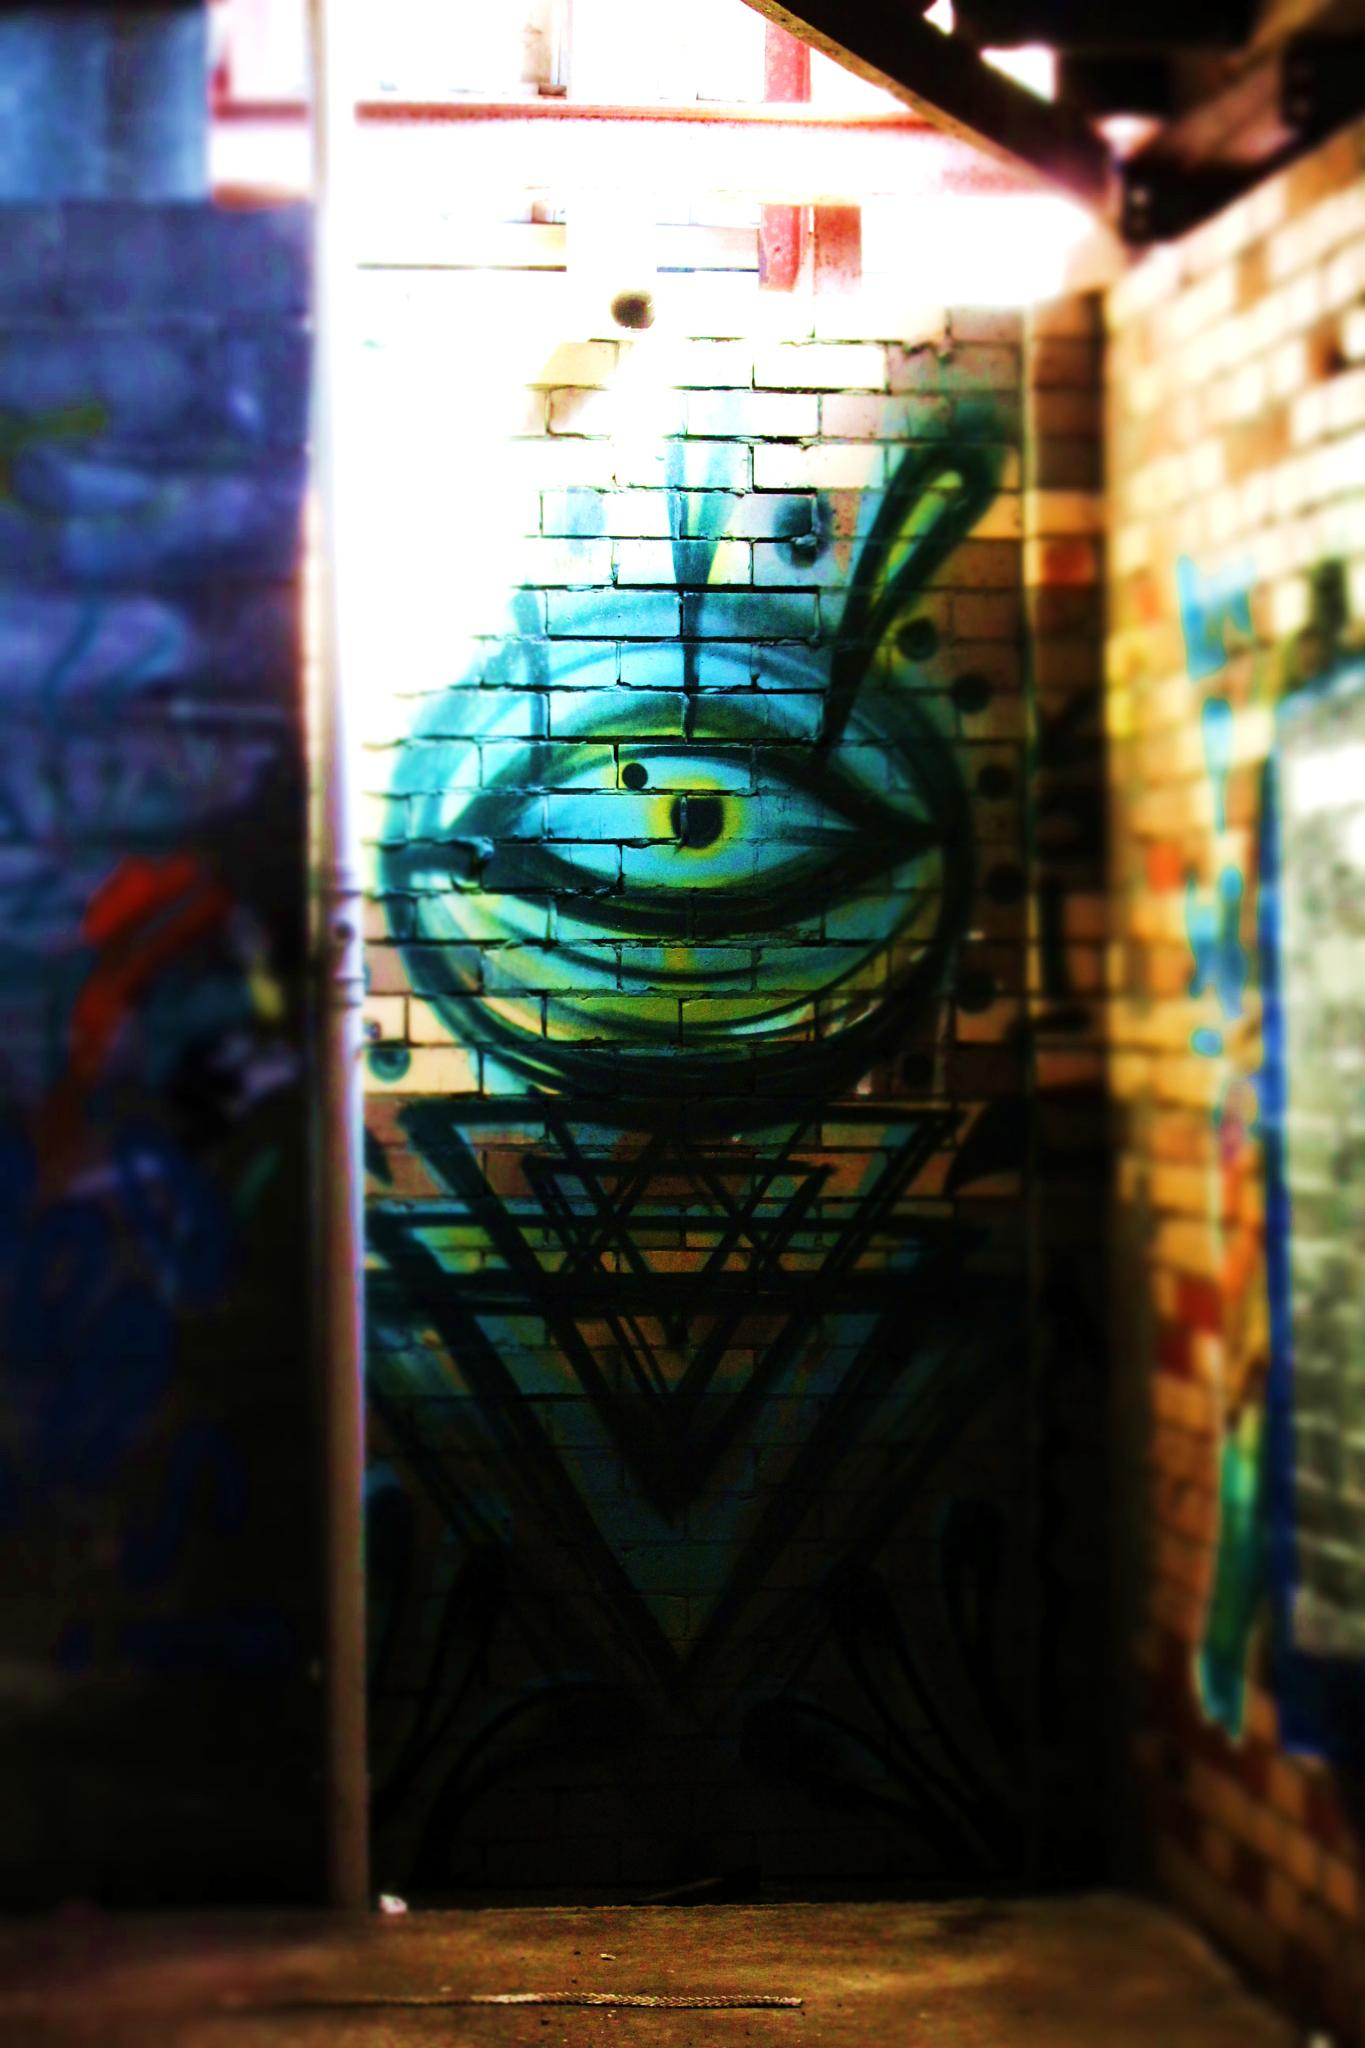 Wall Artistry by BeccyleeRichi